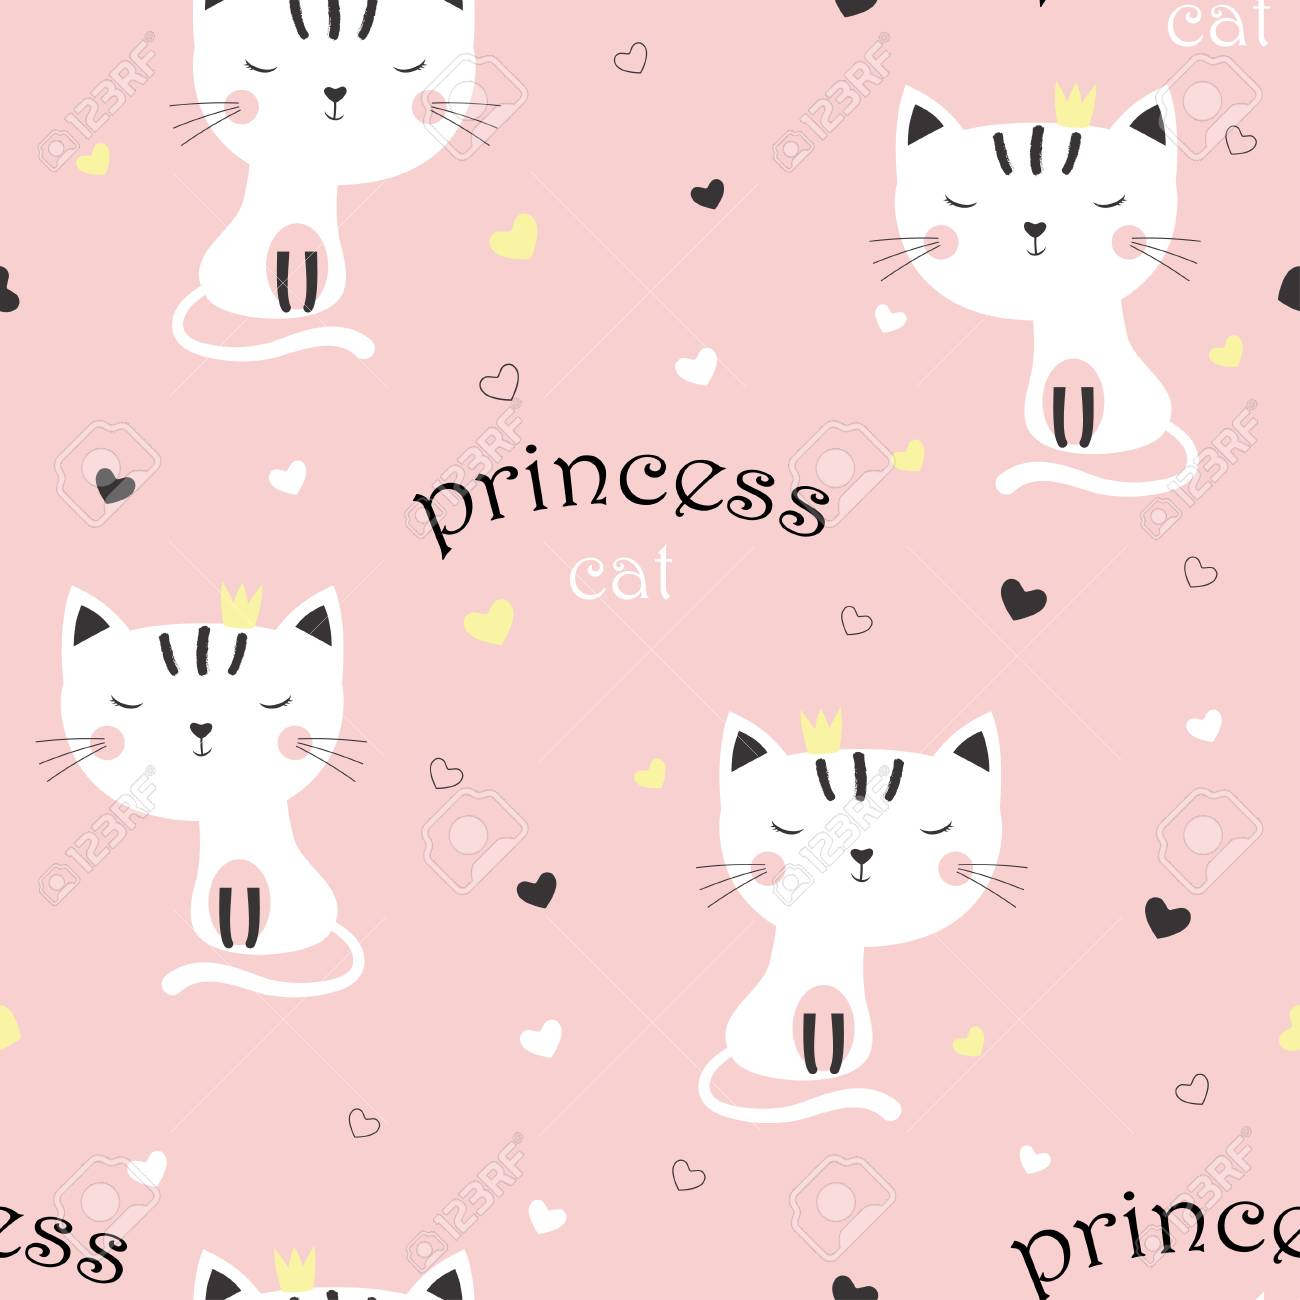 Pattern With Cartoon Sweet Cat Girl In Crown On Pink Background Royalty Free Cliparts Vectors And Stock Illustration Image 115451961 Your cartoon crown stock images are ready. pattern with cartoon sweet cat girl in crown on pink background